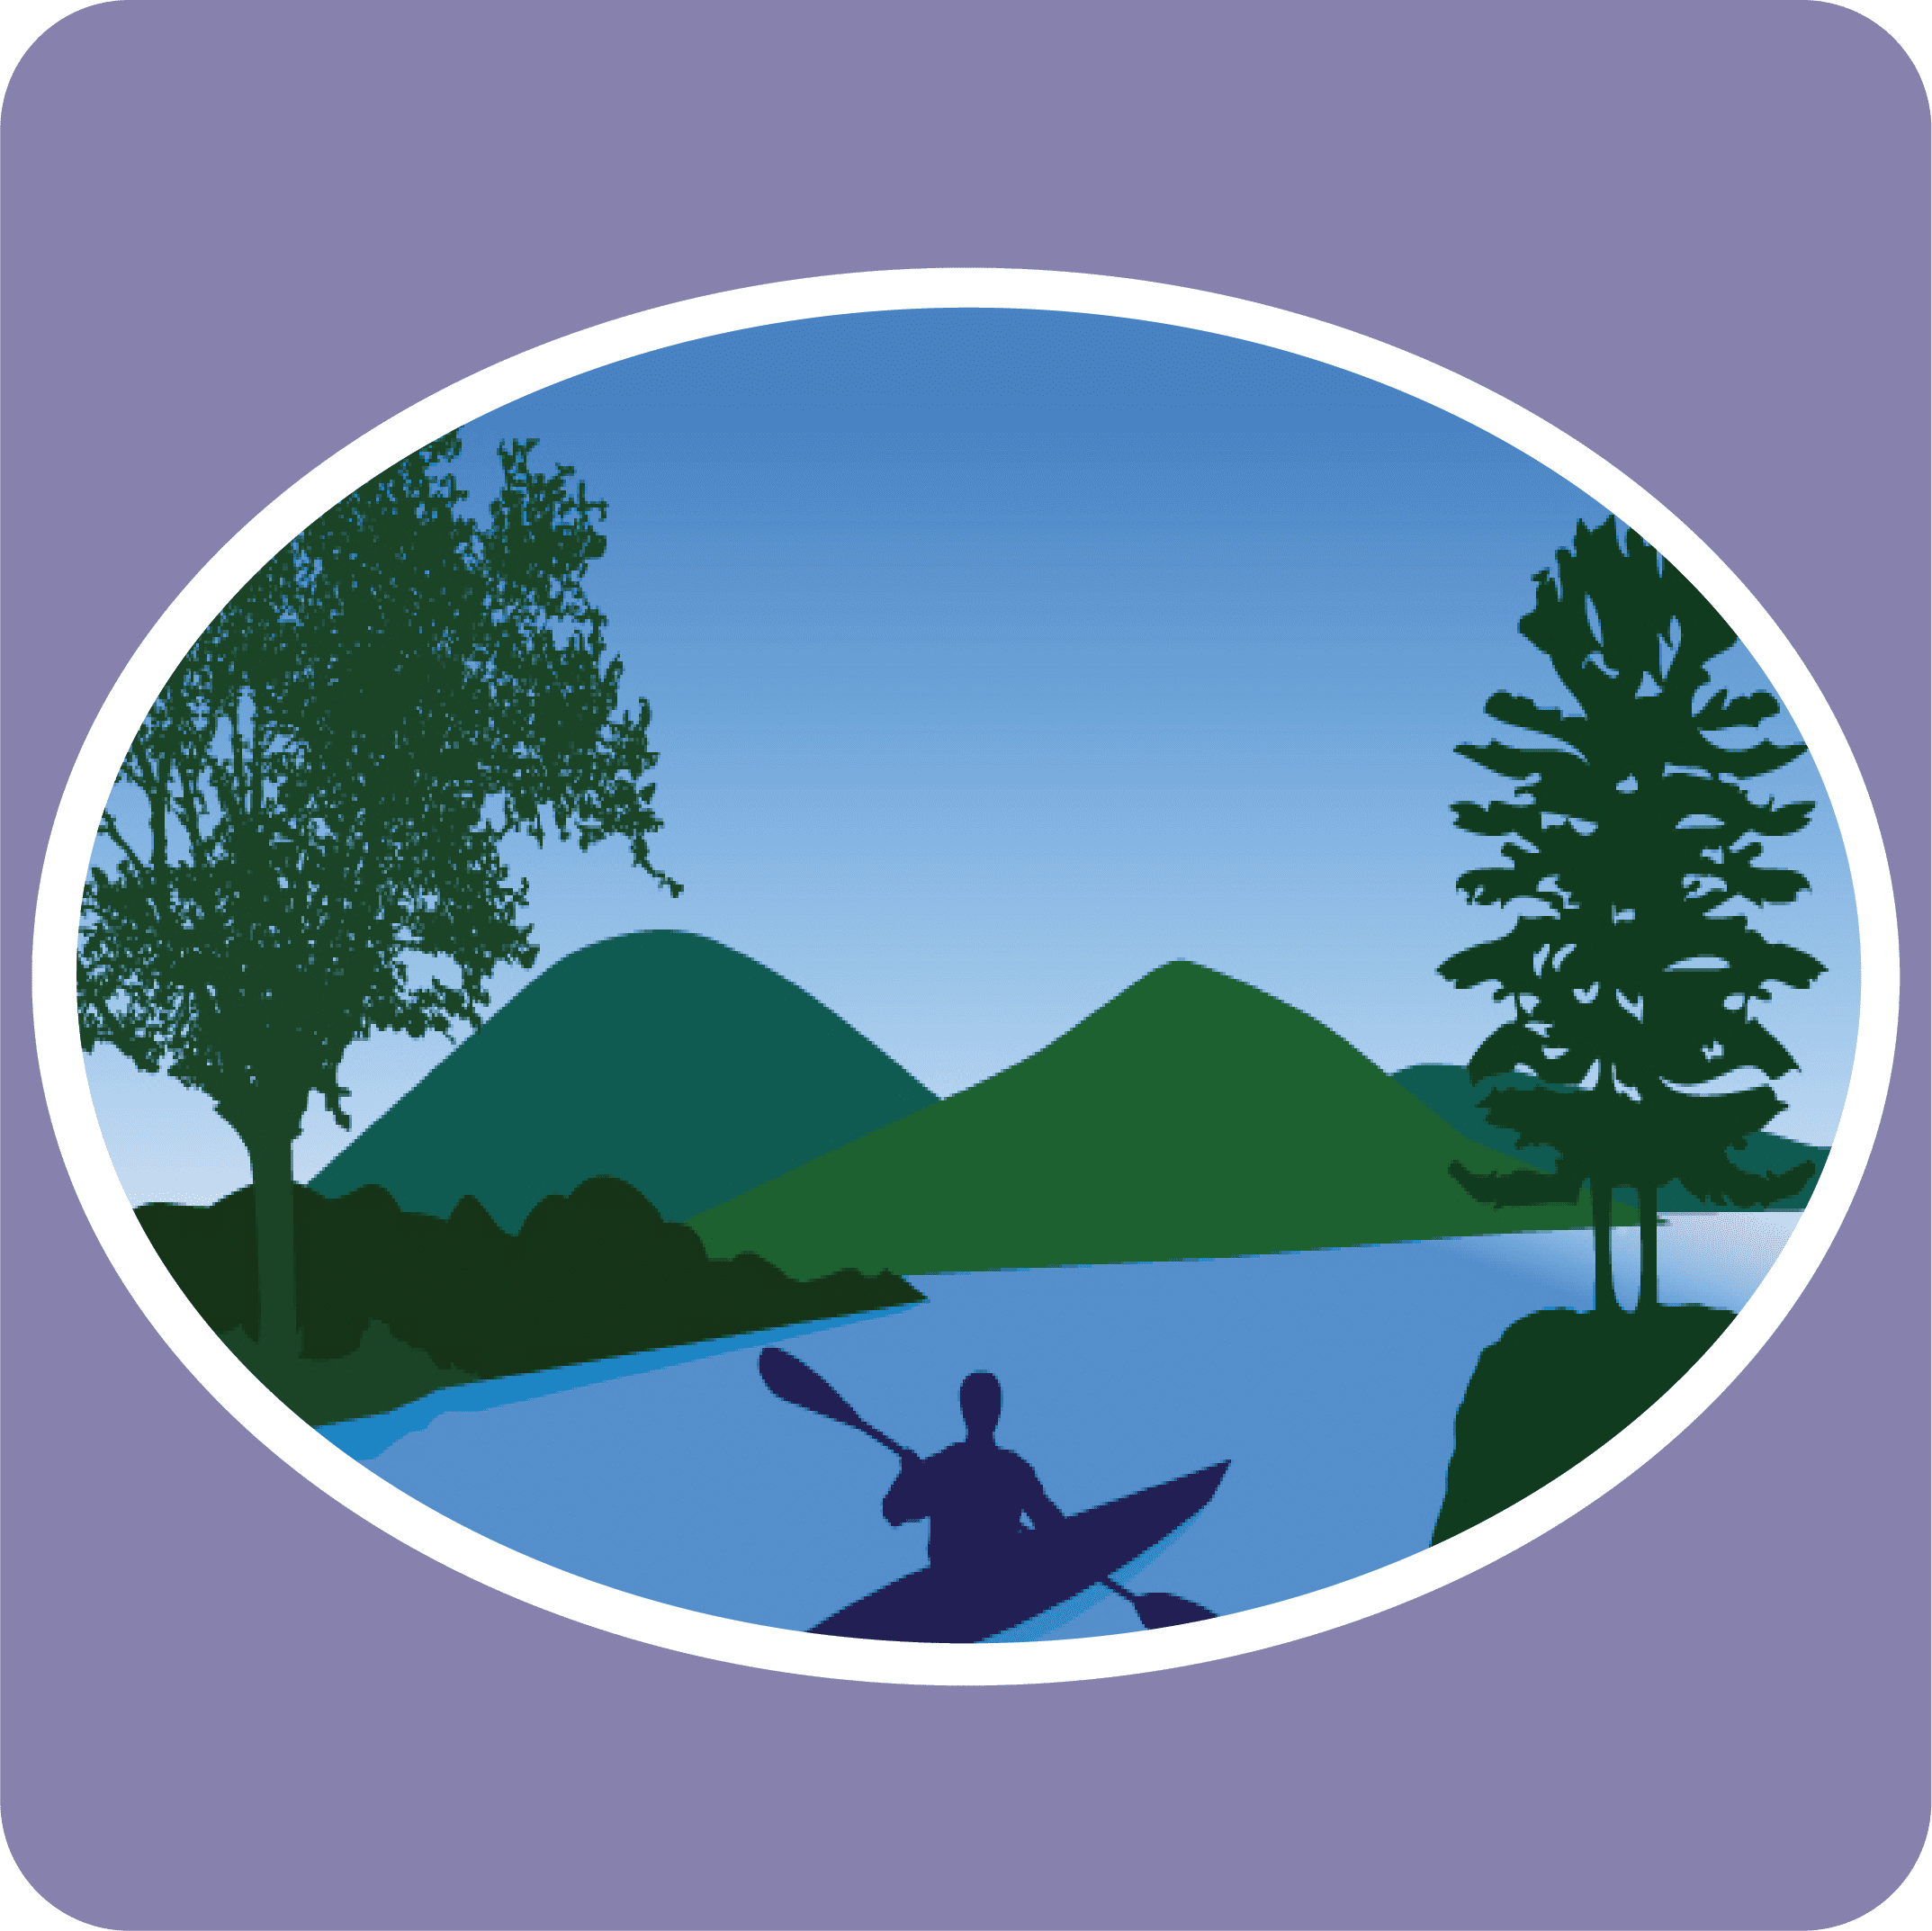 Logo of a drawn picture of a paddler on the water with green trees and mountains in the background